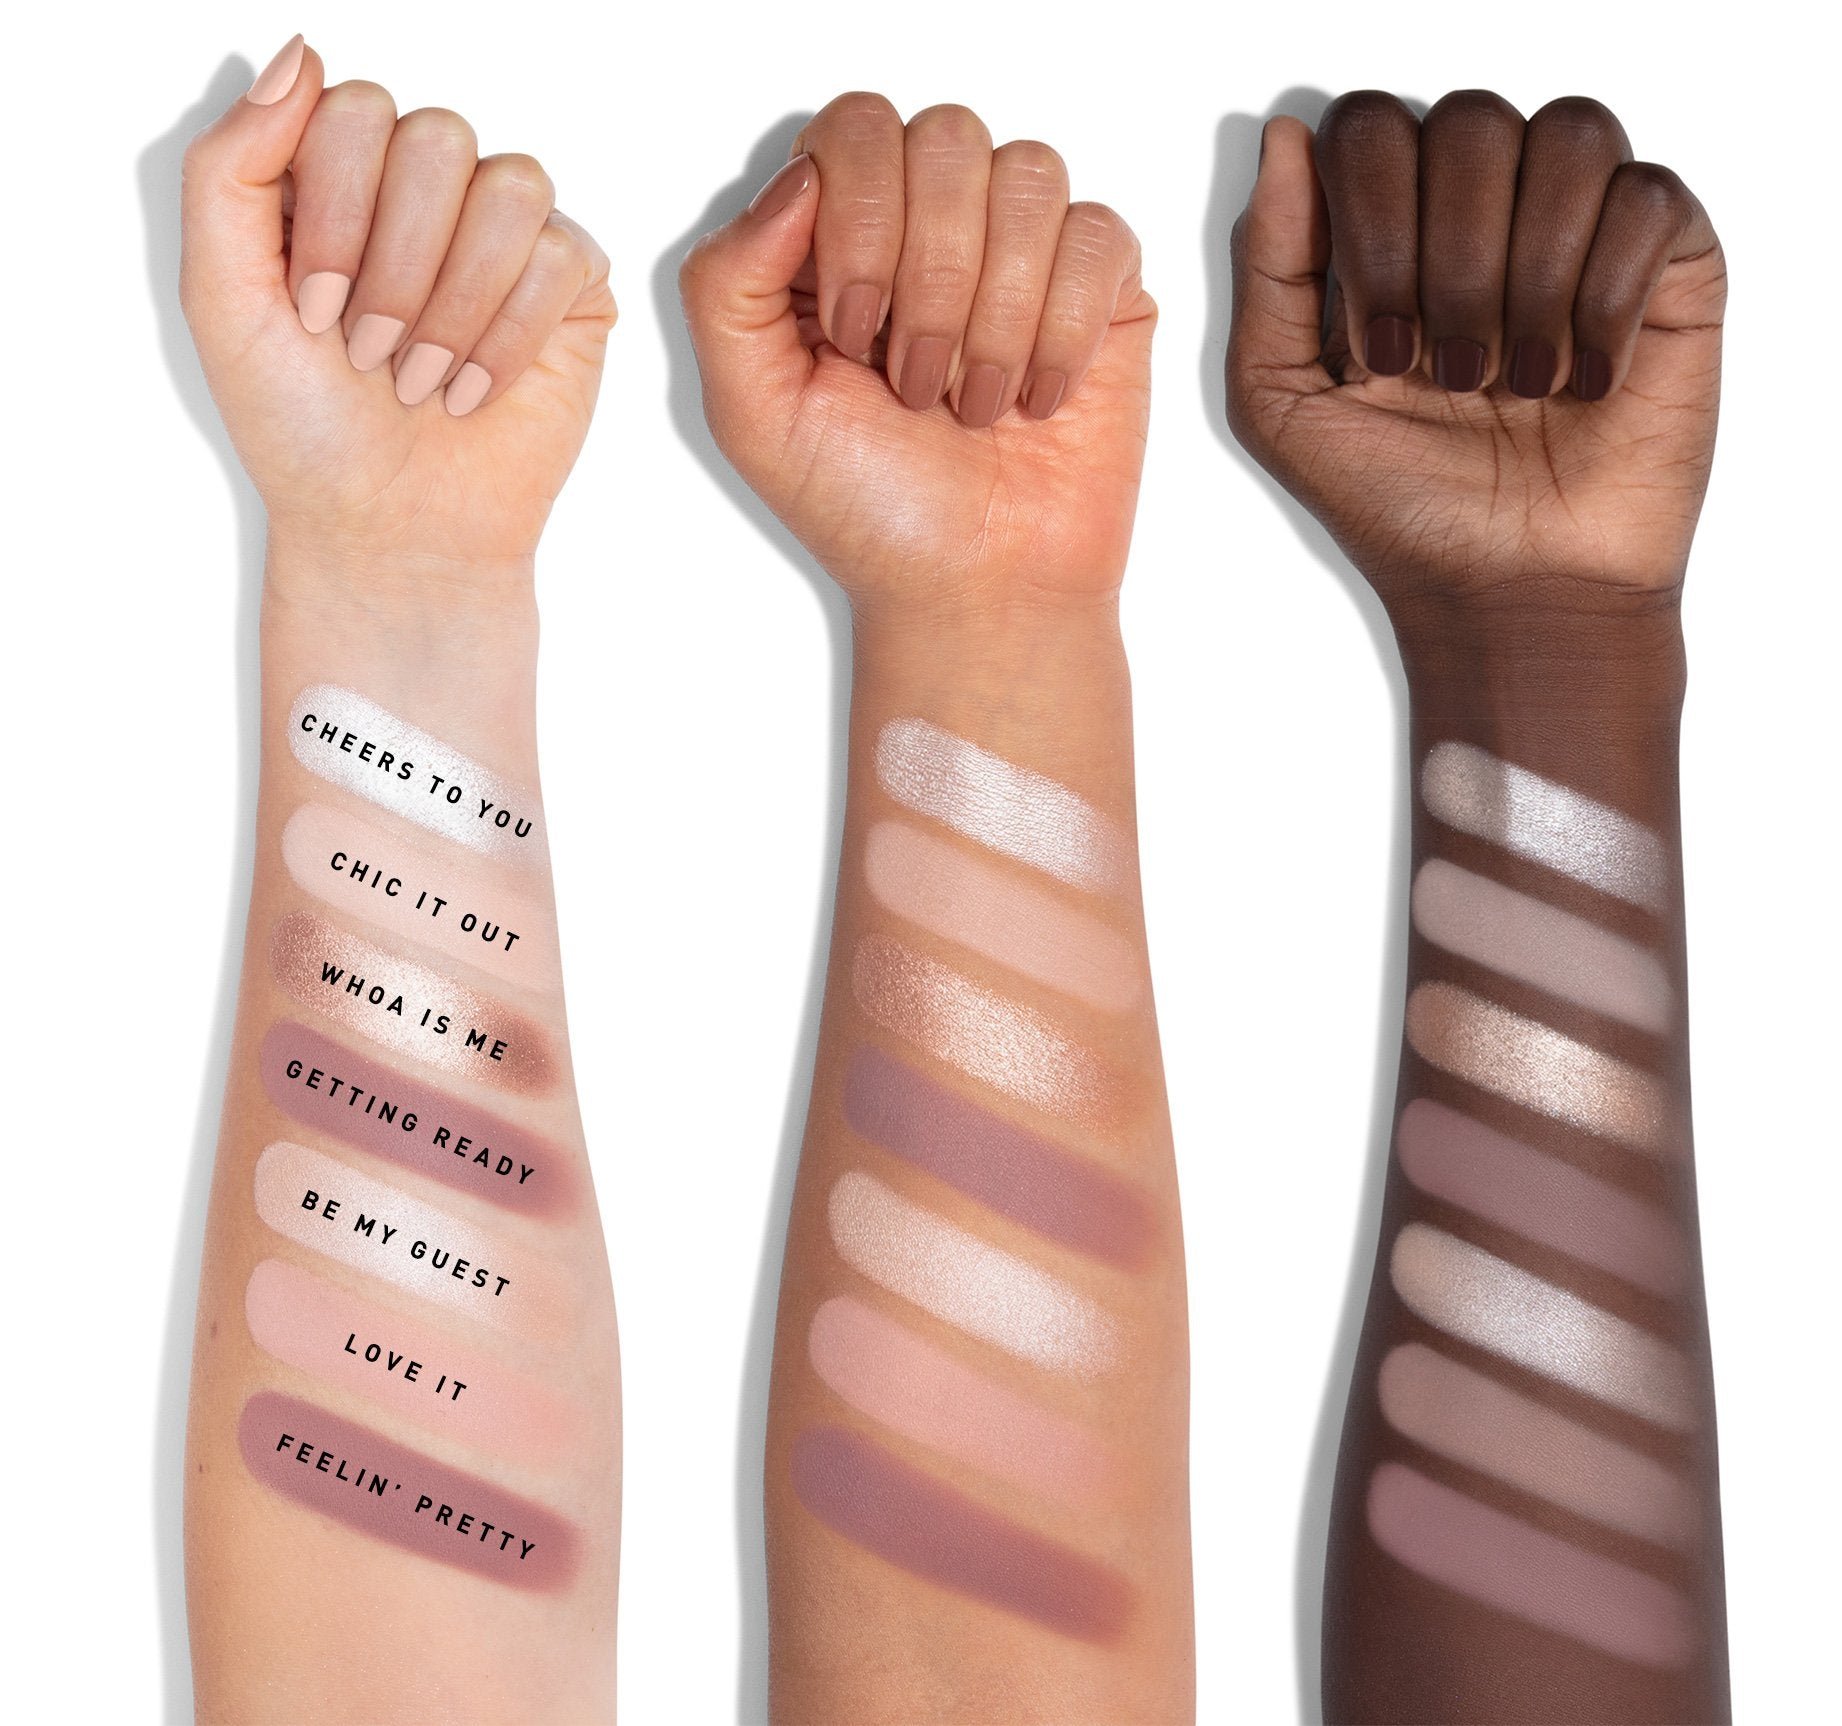 35C EVERYDAY CHIC ARTISTRY PALETTE ARM SWATCHES, view larger image